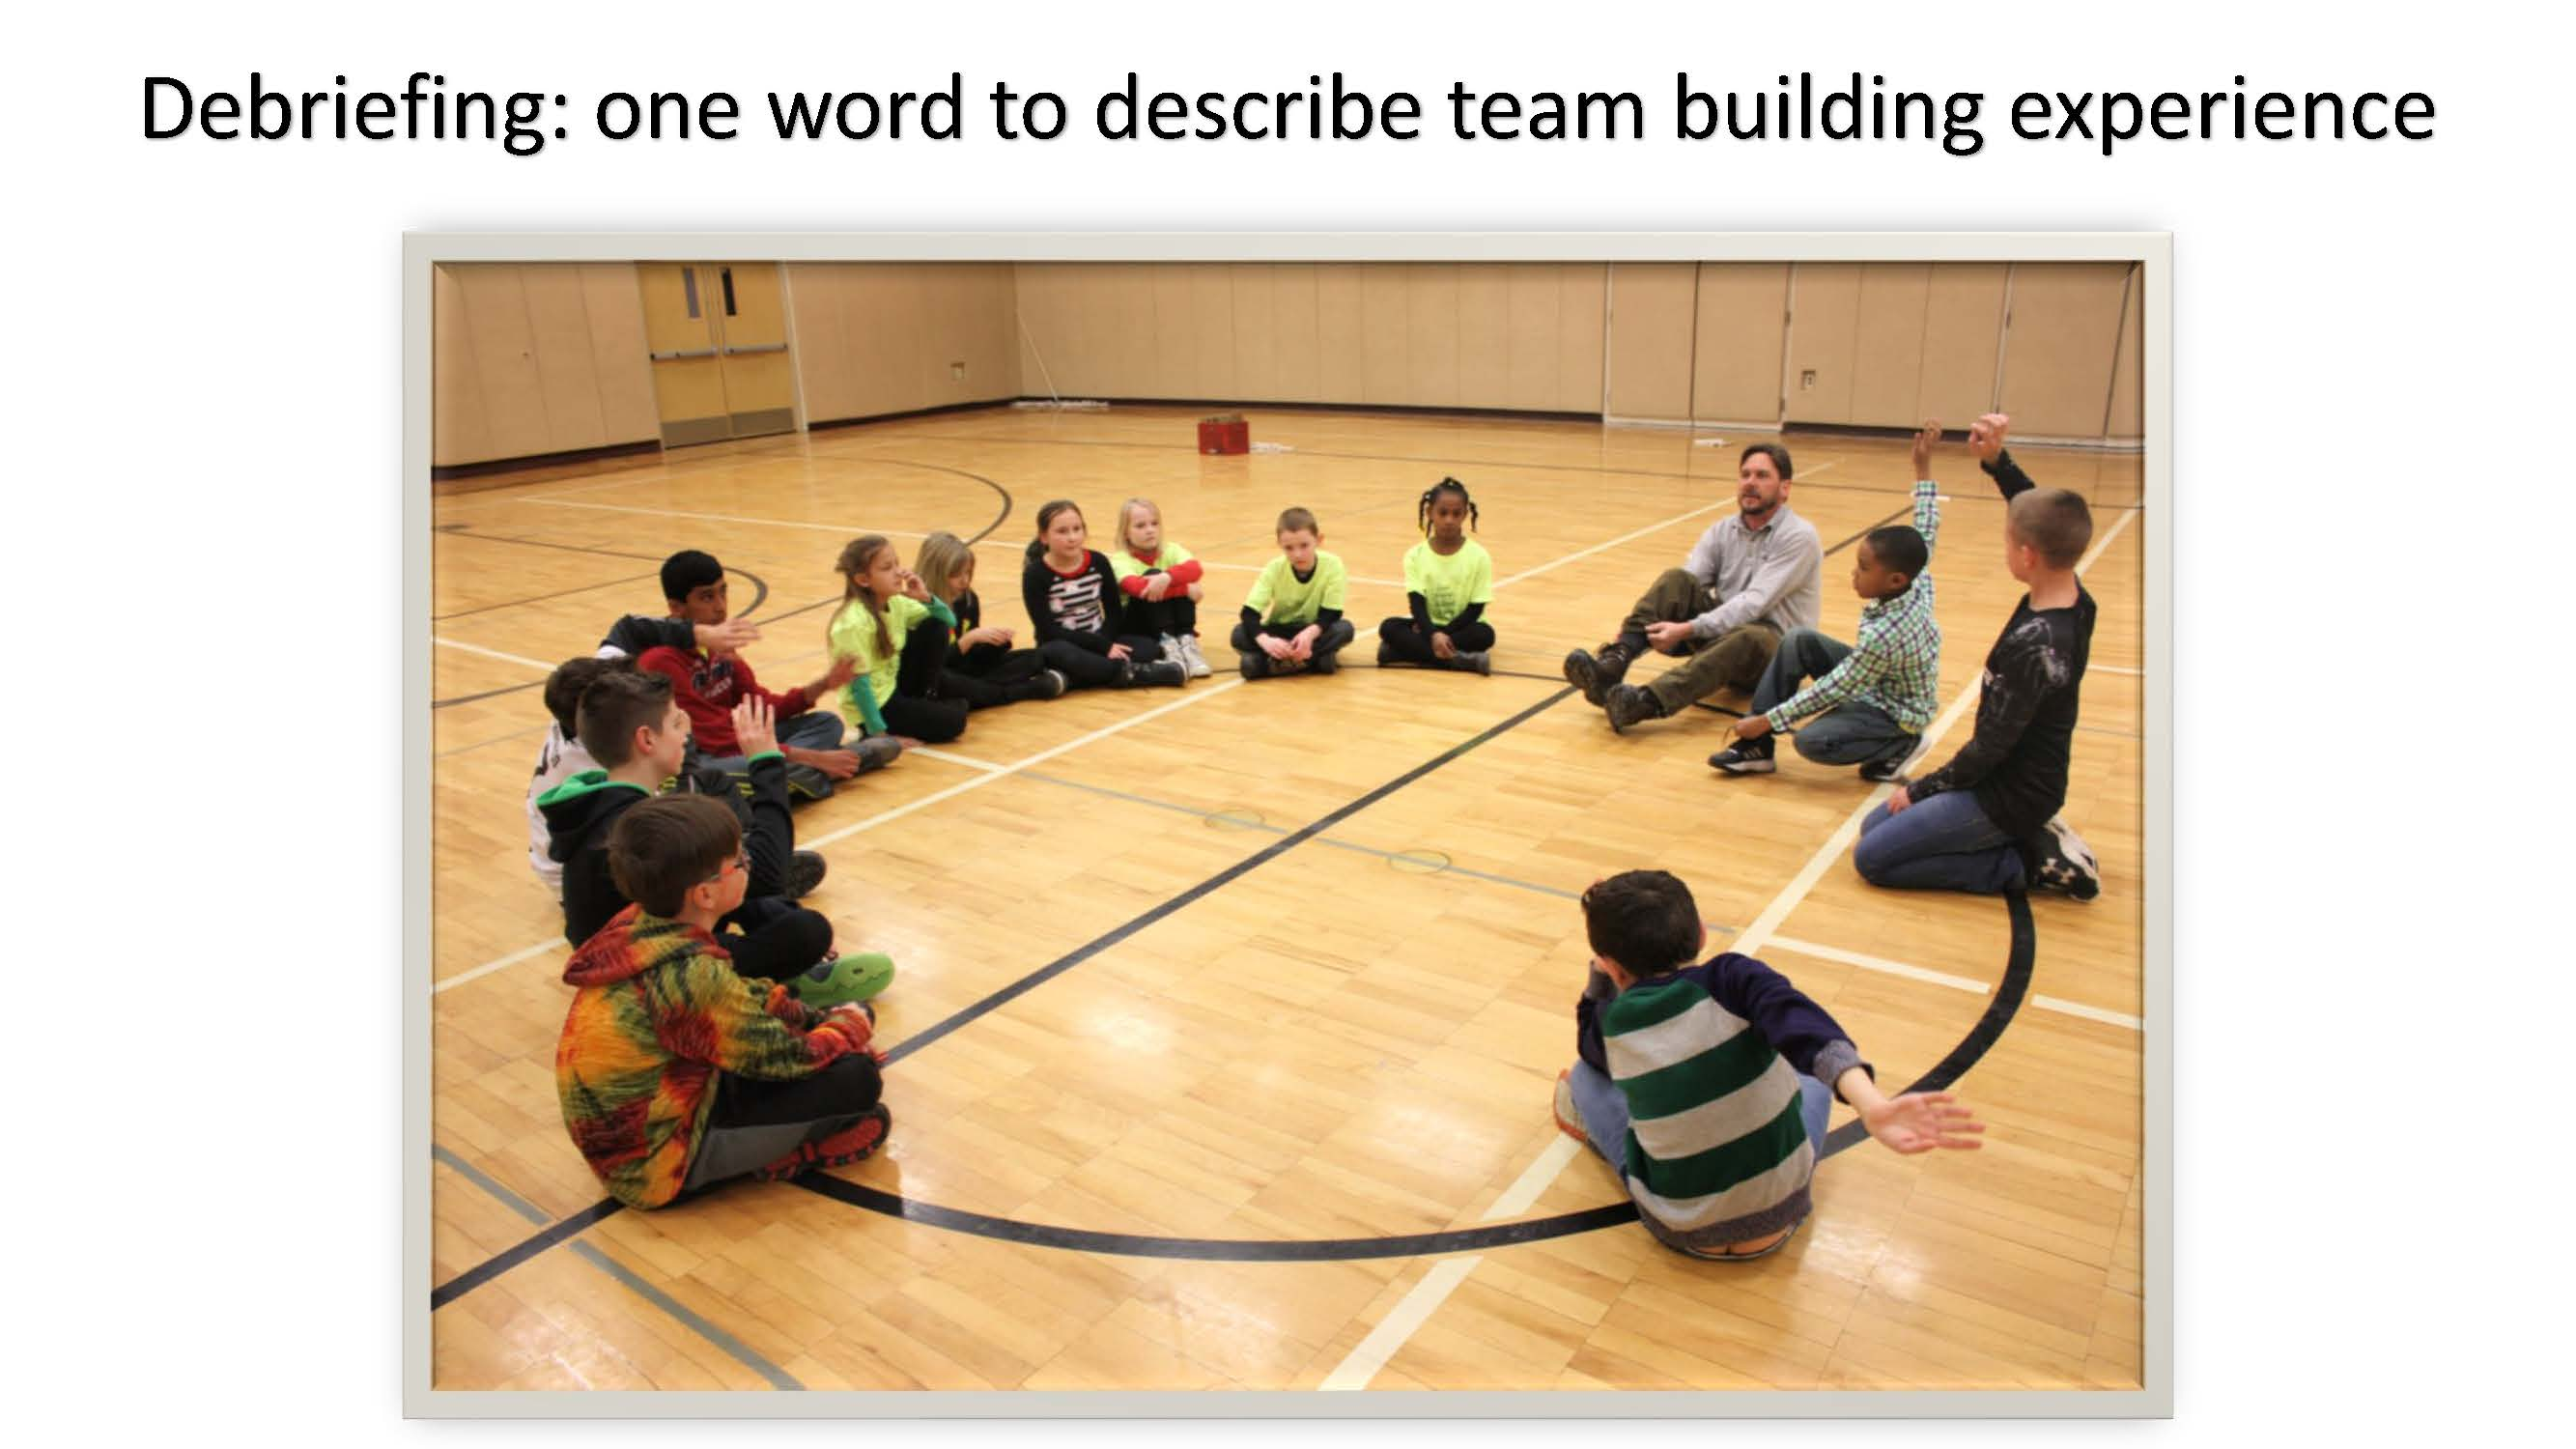 Team Building 2019 Slides Page 12